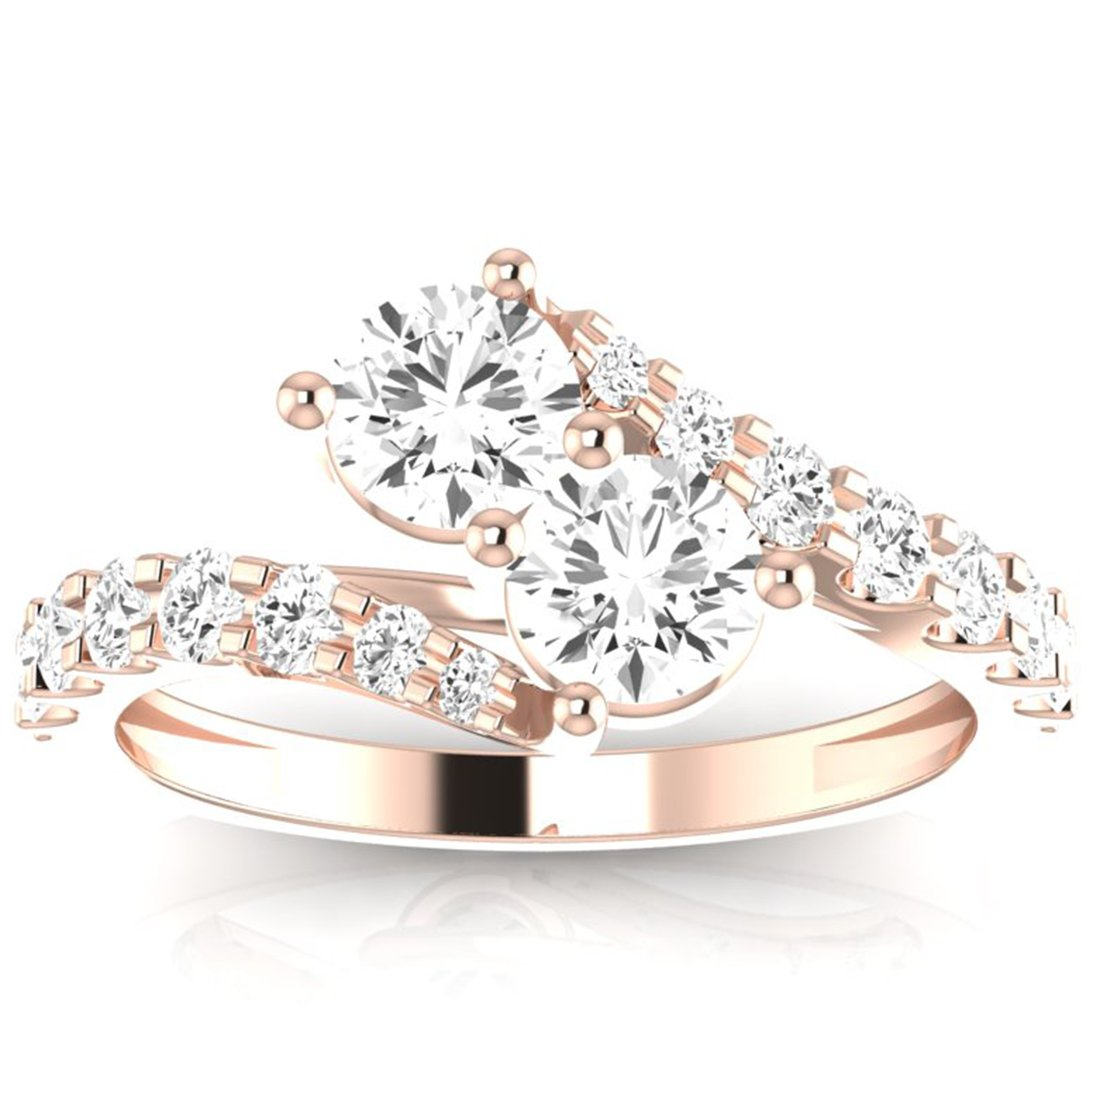 3/4 Carat t.w. Twisting Pave Set 2rue Love 2 Stone Collection Round 14K Rose Gold Diamond Engagement Ring (J-K Color, VS1-VS2 ClarityCenter Stones)